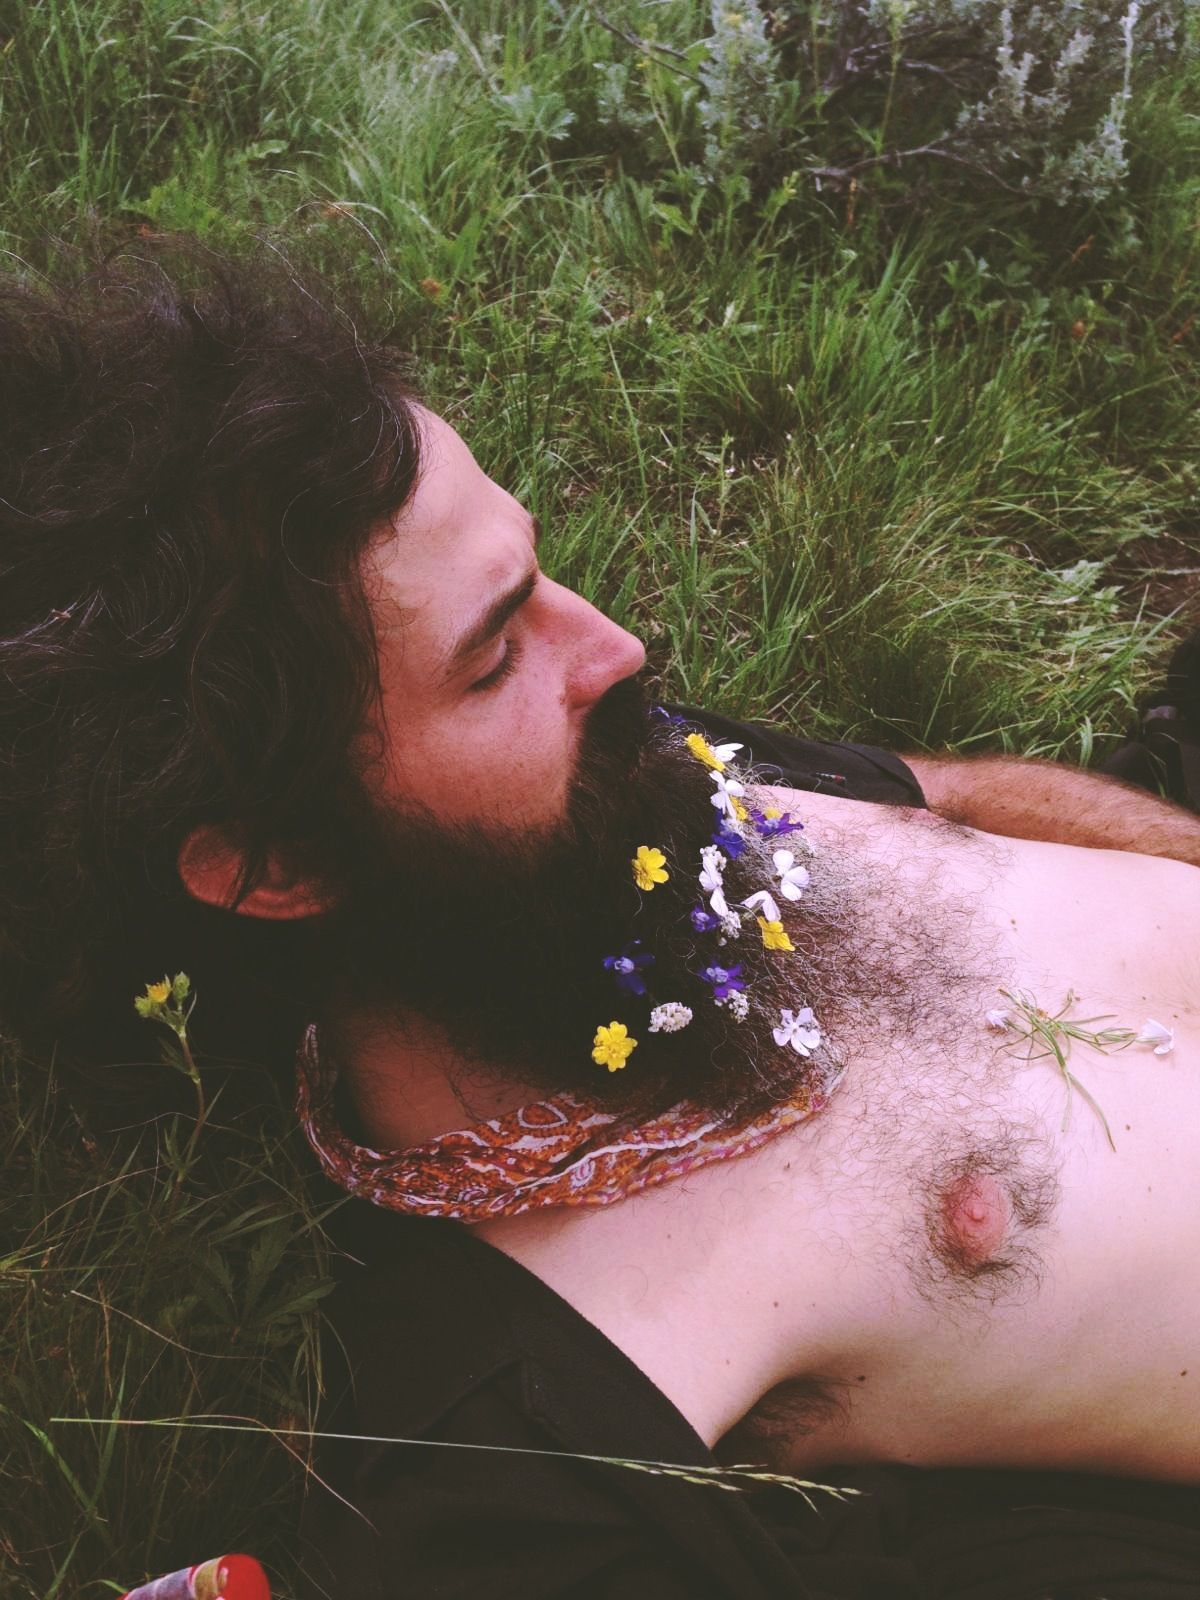 blossoming beard with birdsong in background